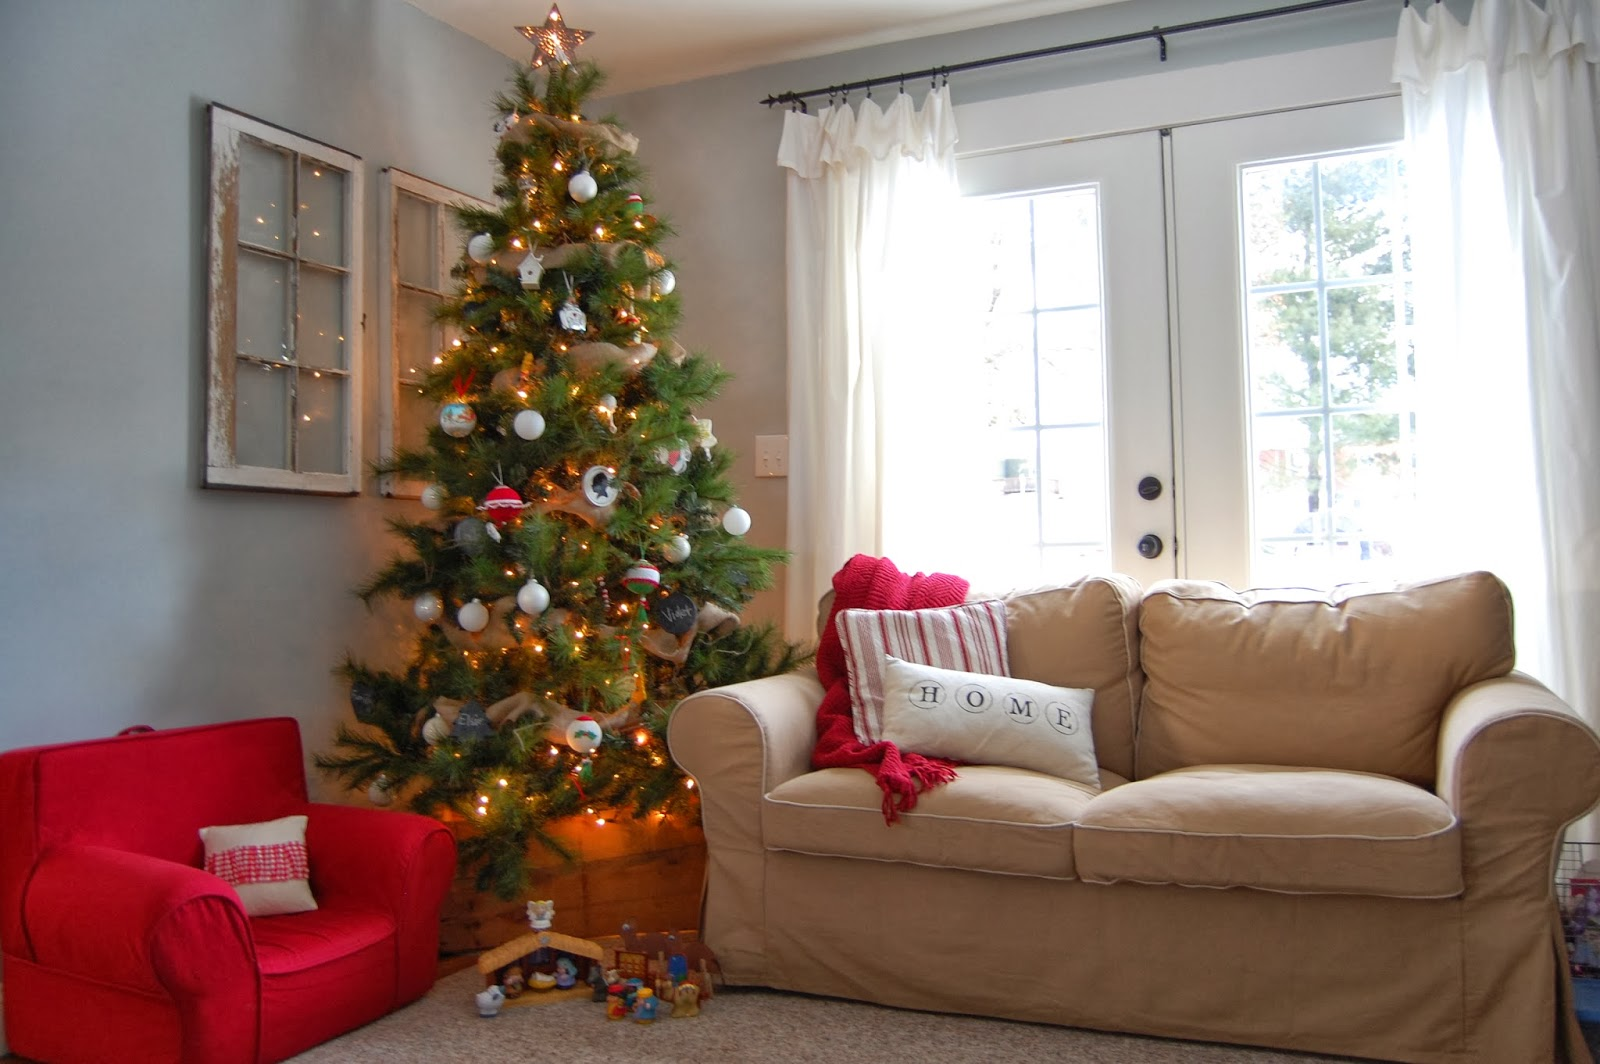 Holiday Decorating Less Is More Less Is More Holiday Decor Styleblueprint Christmas Less Is More Home